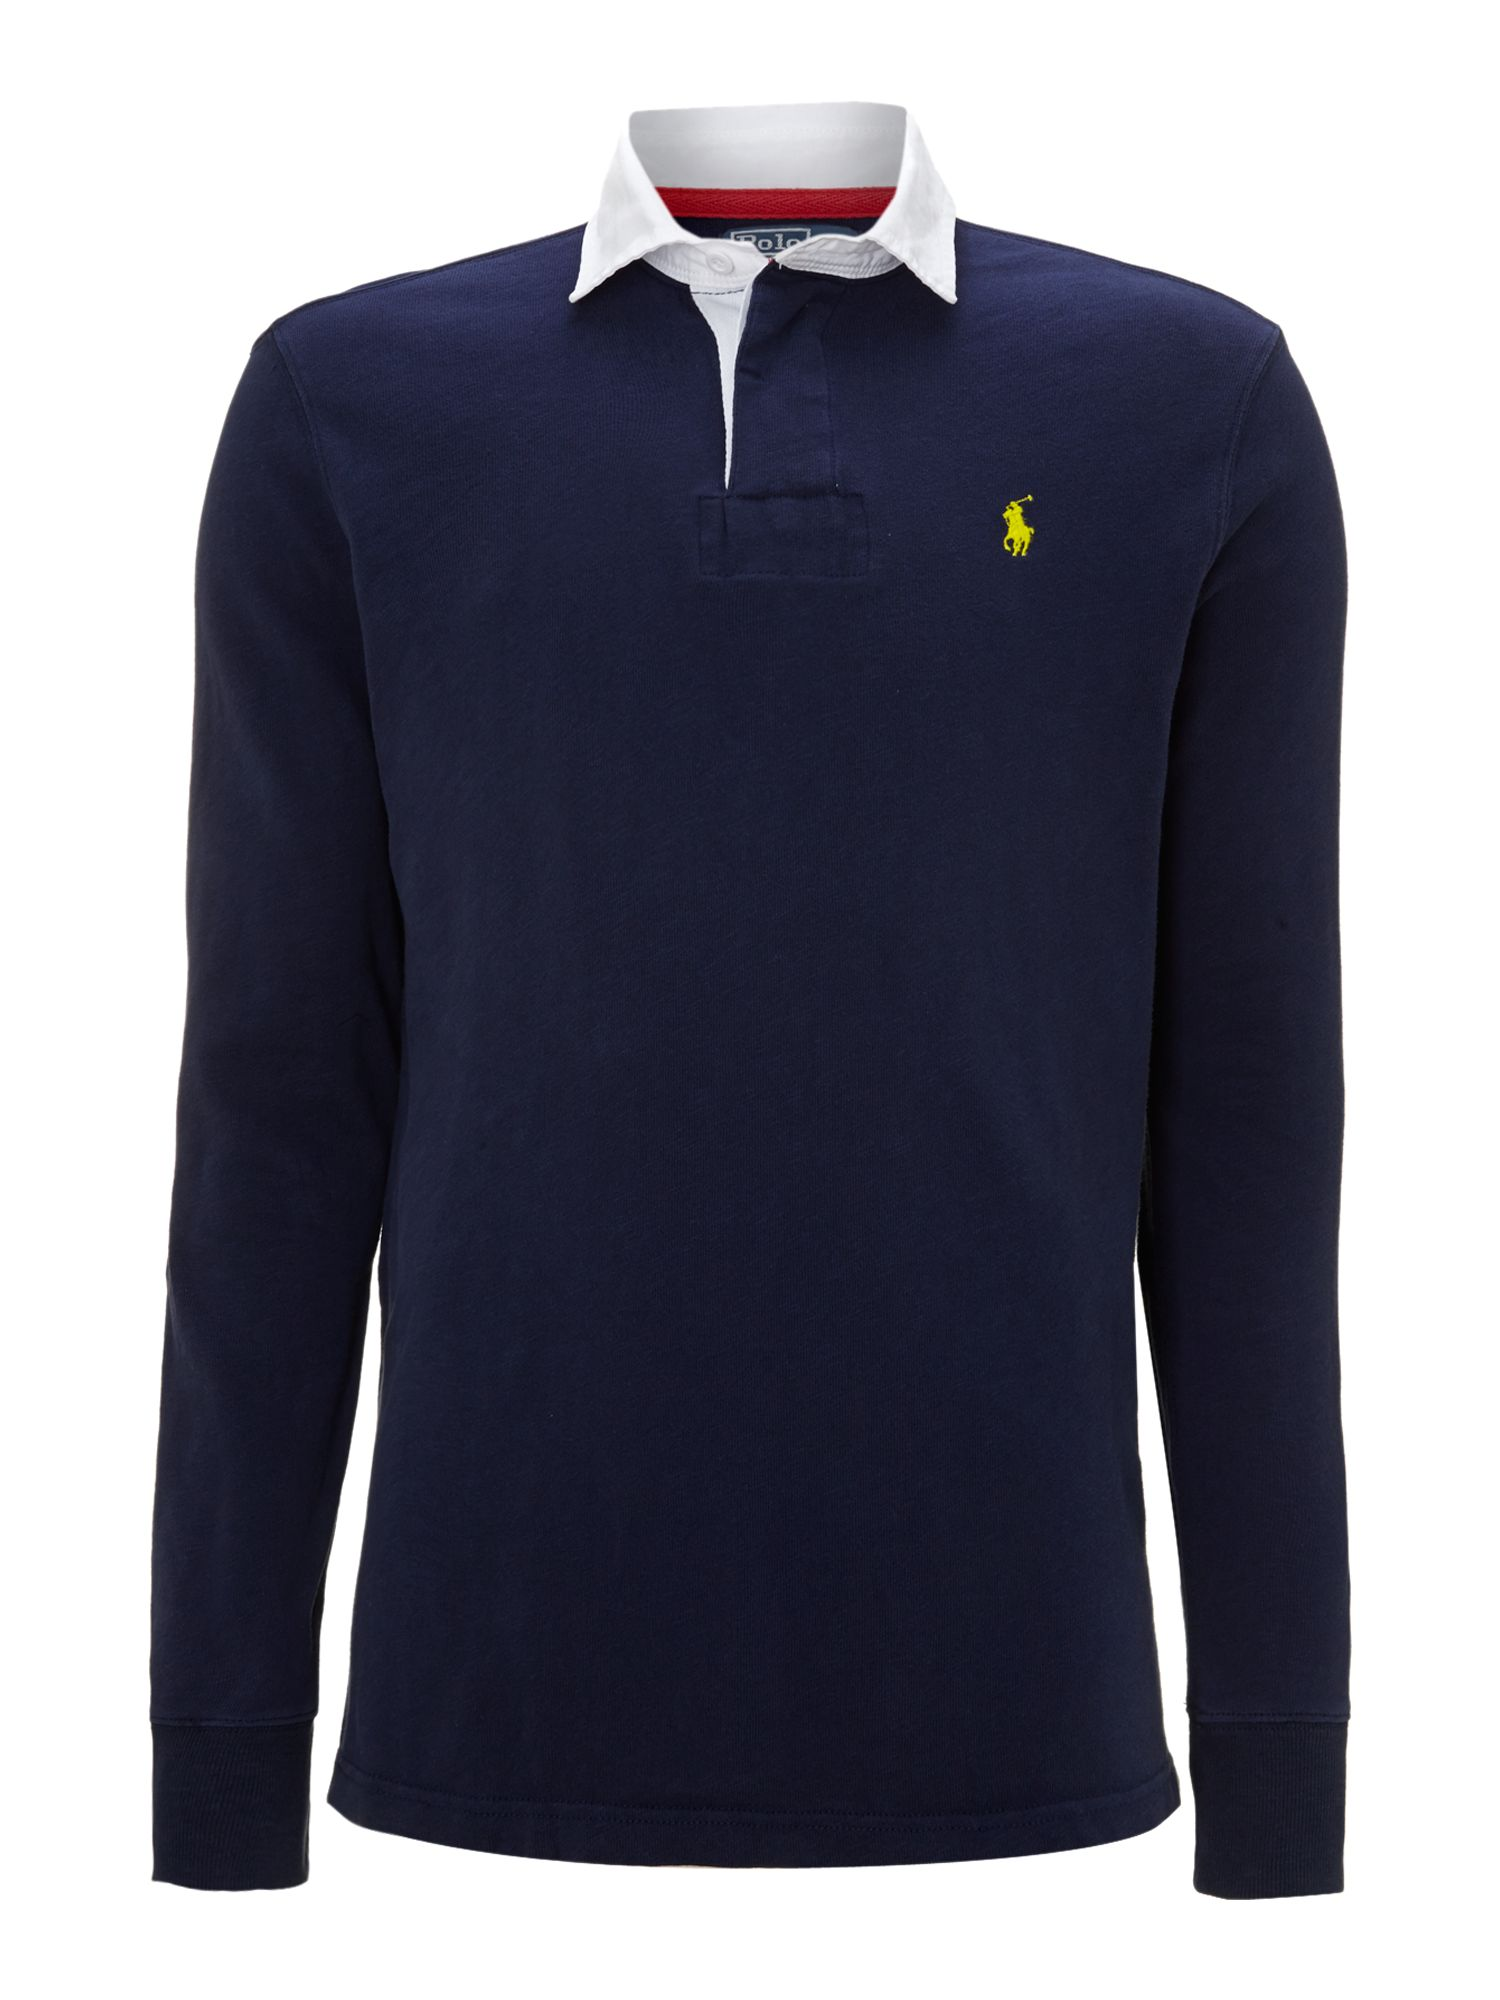 ... polo ralph lauren mens rugby shirt ...